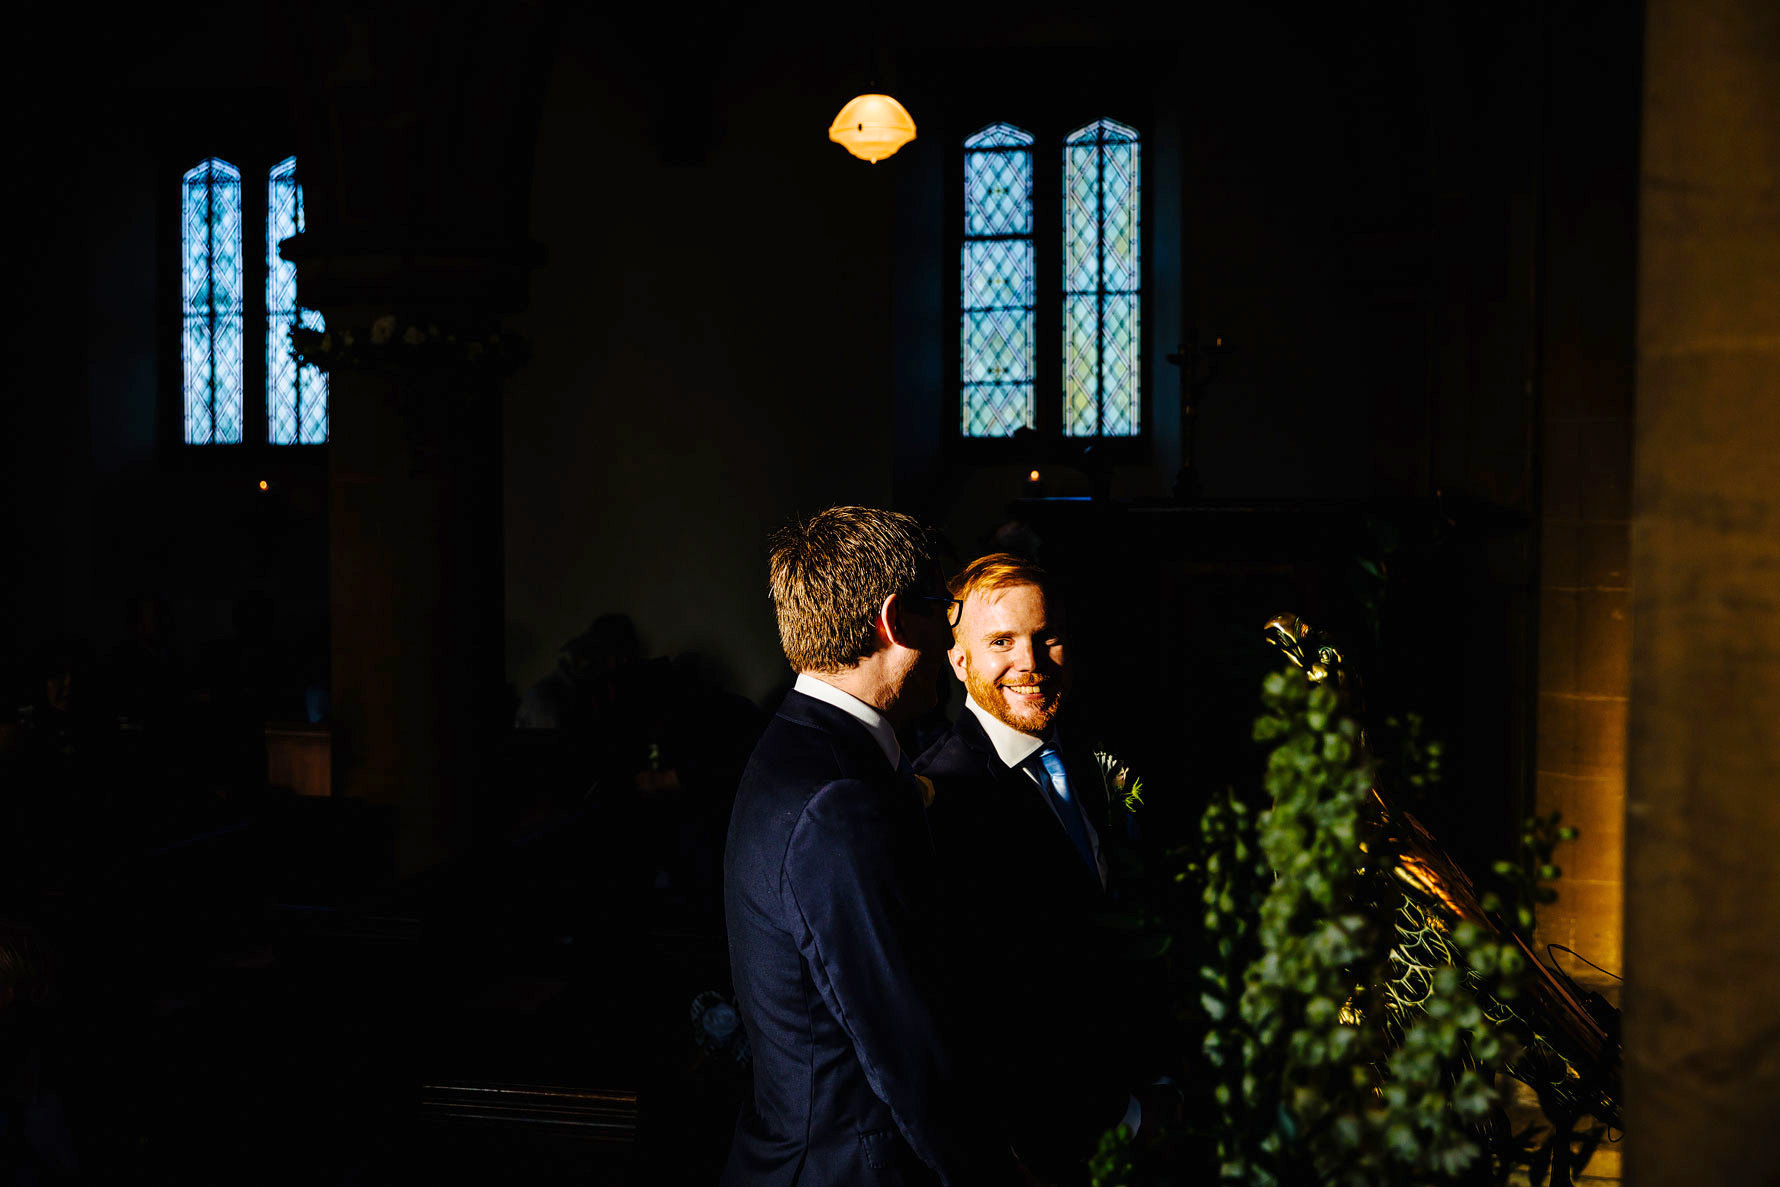 hothorpe hall woodlands wedding photography by Elliot W Patching